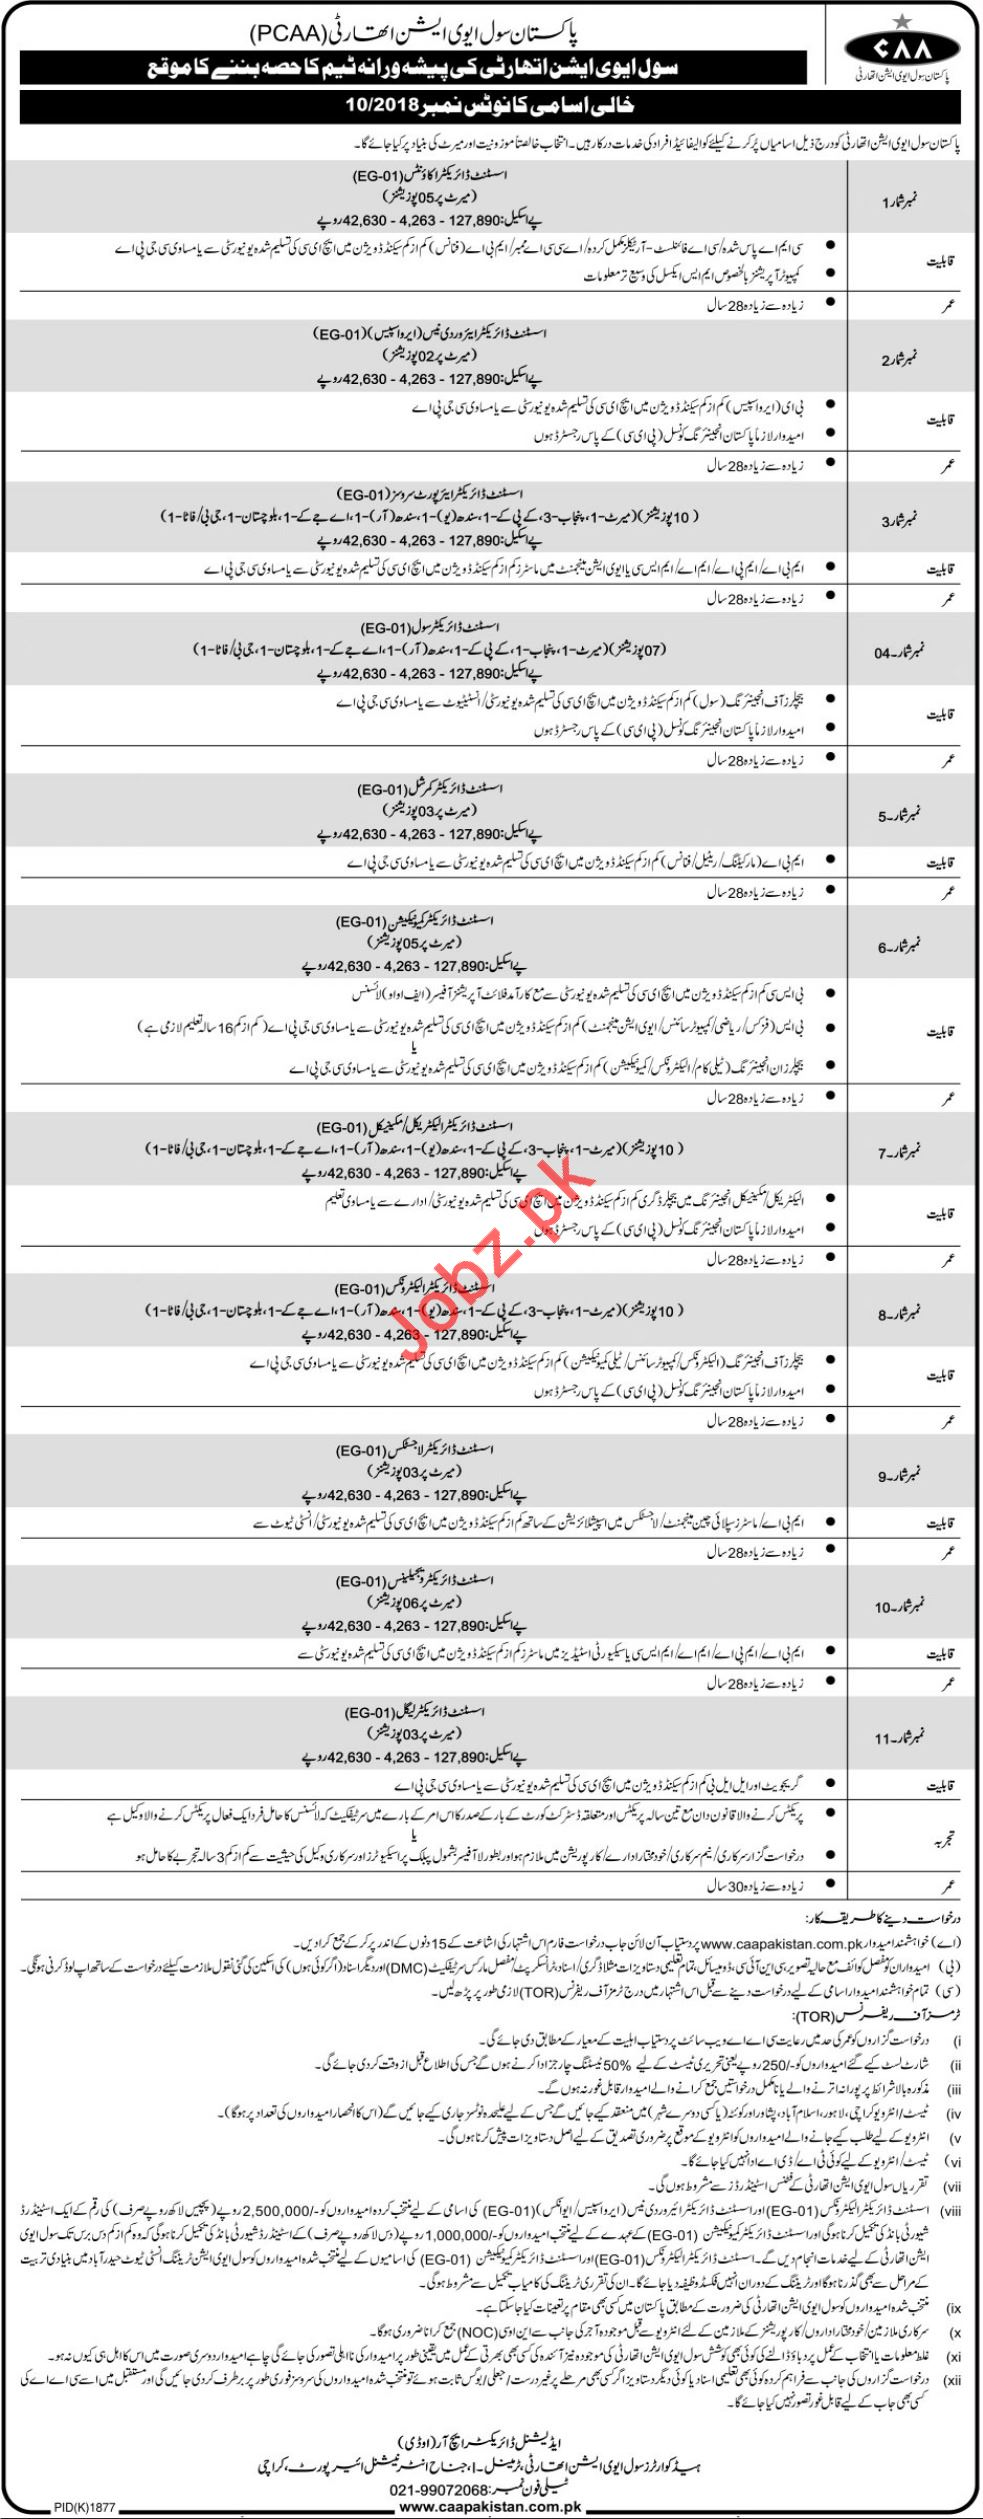 Pakistan Civil Aviation Authority PCAA Jobs 2018 in Karachi